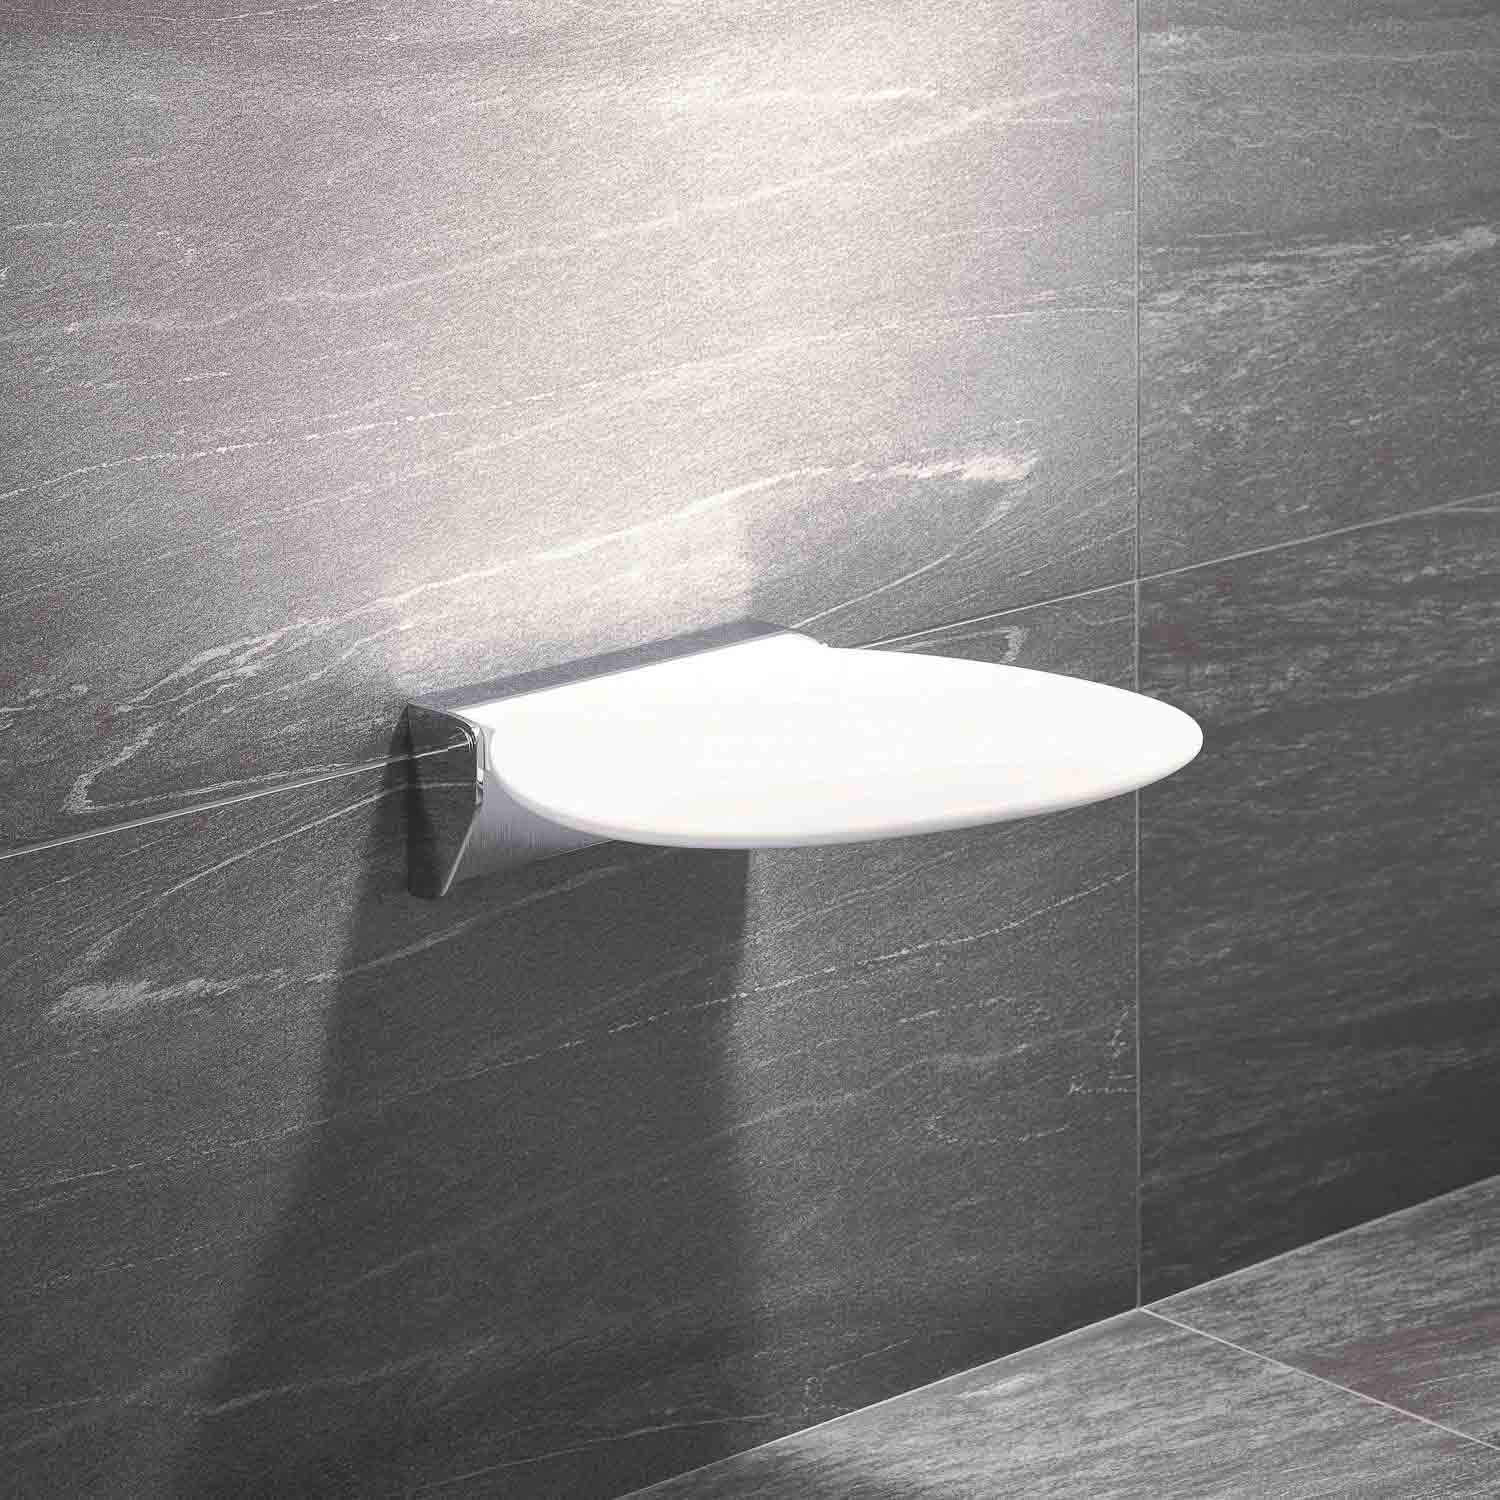 Circula Shower Seat with a white seat and chrome bracket lifestyle image